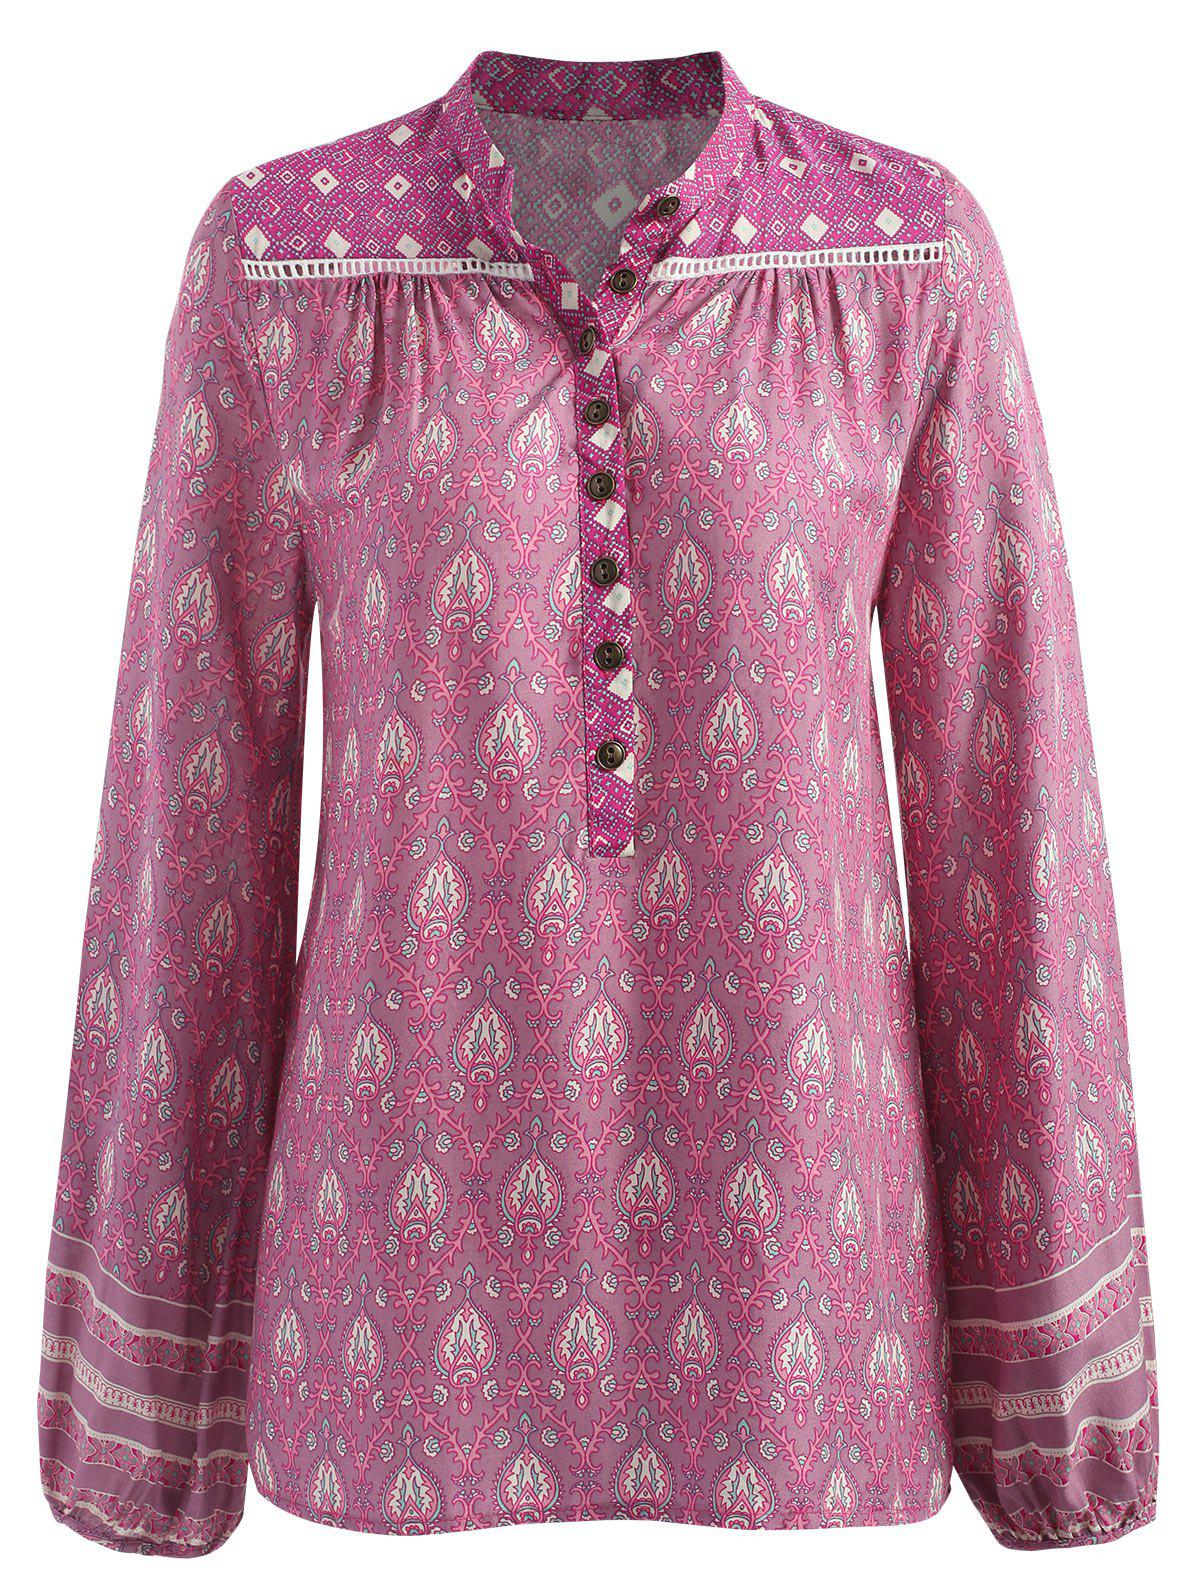 Bohemian Baroque Printed Blouse - PINK S